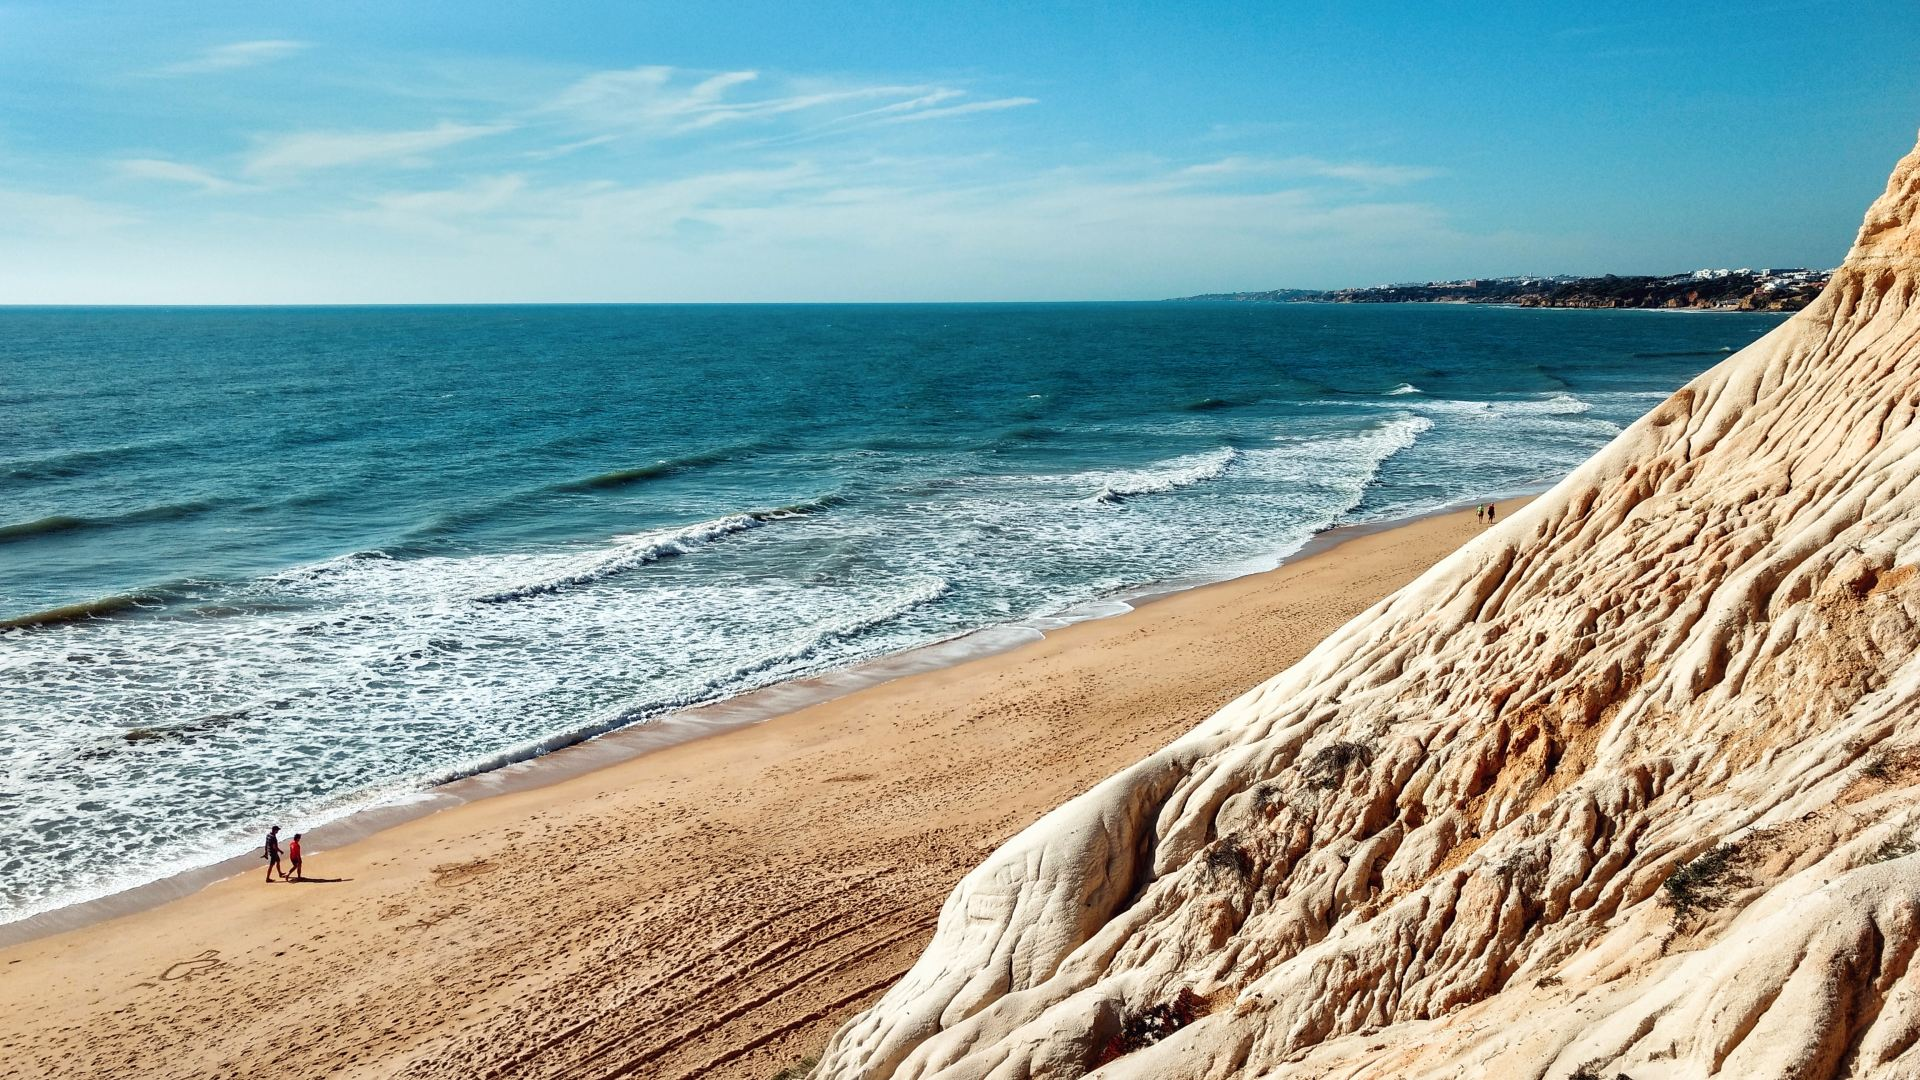 One of the most amazing beaches on the Algarve, with golden sand and clear blue ocean